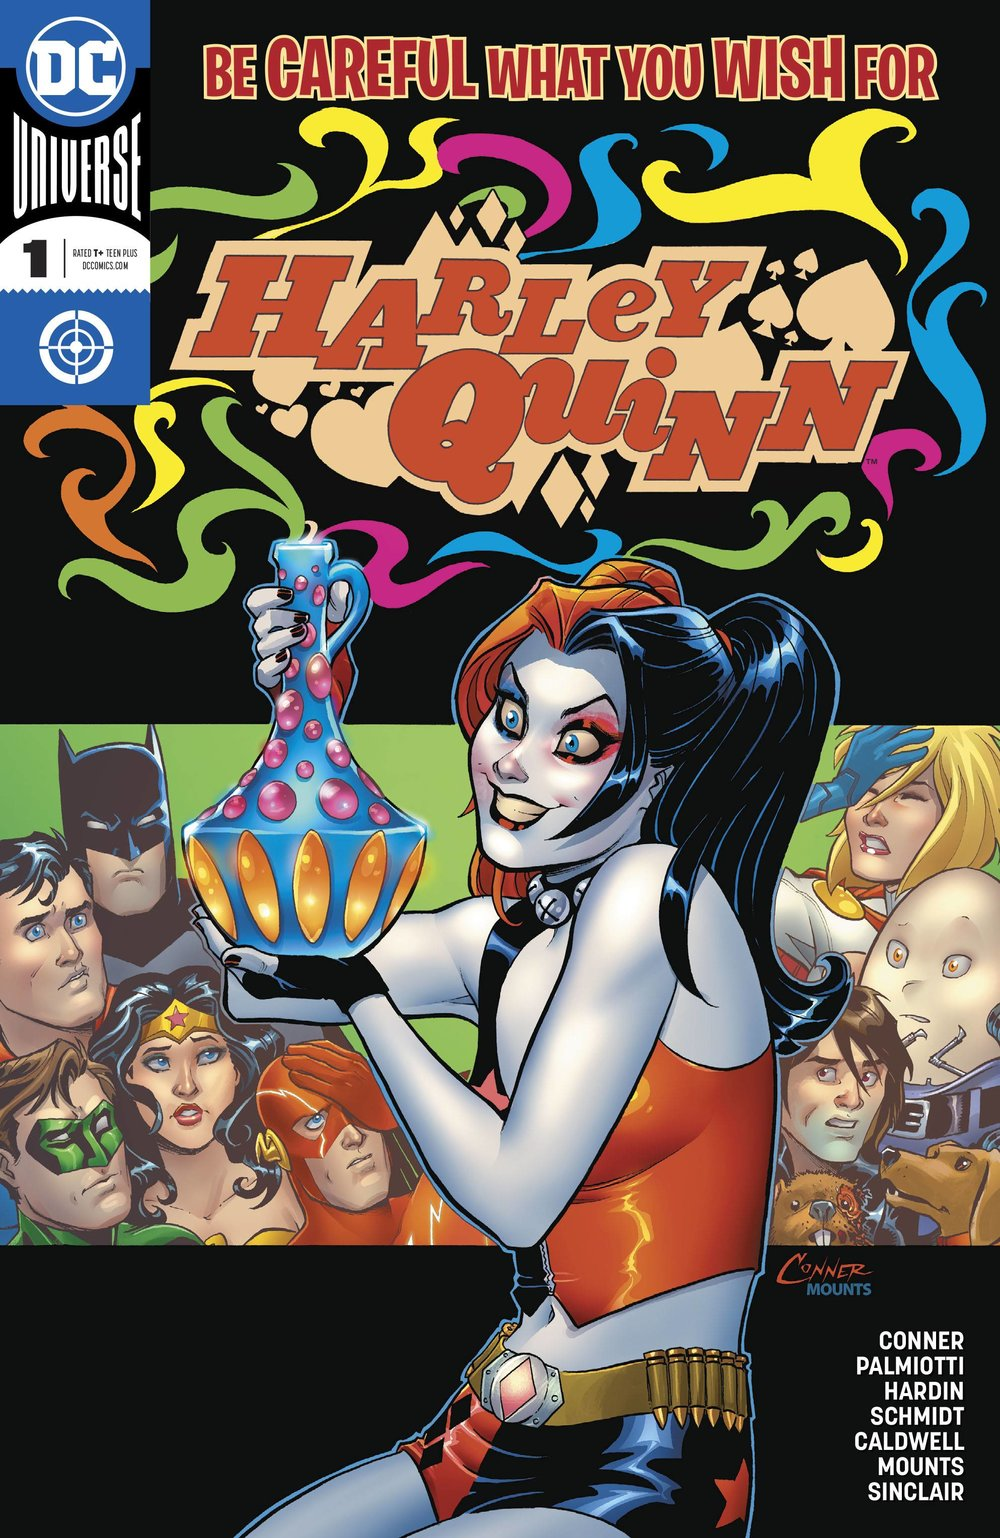 HARLEY QUINN BE CAREFUL WHAT YOU WISH FOR 1 SPC.jpg